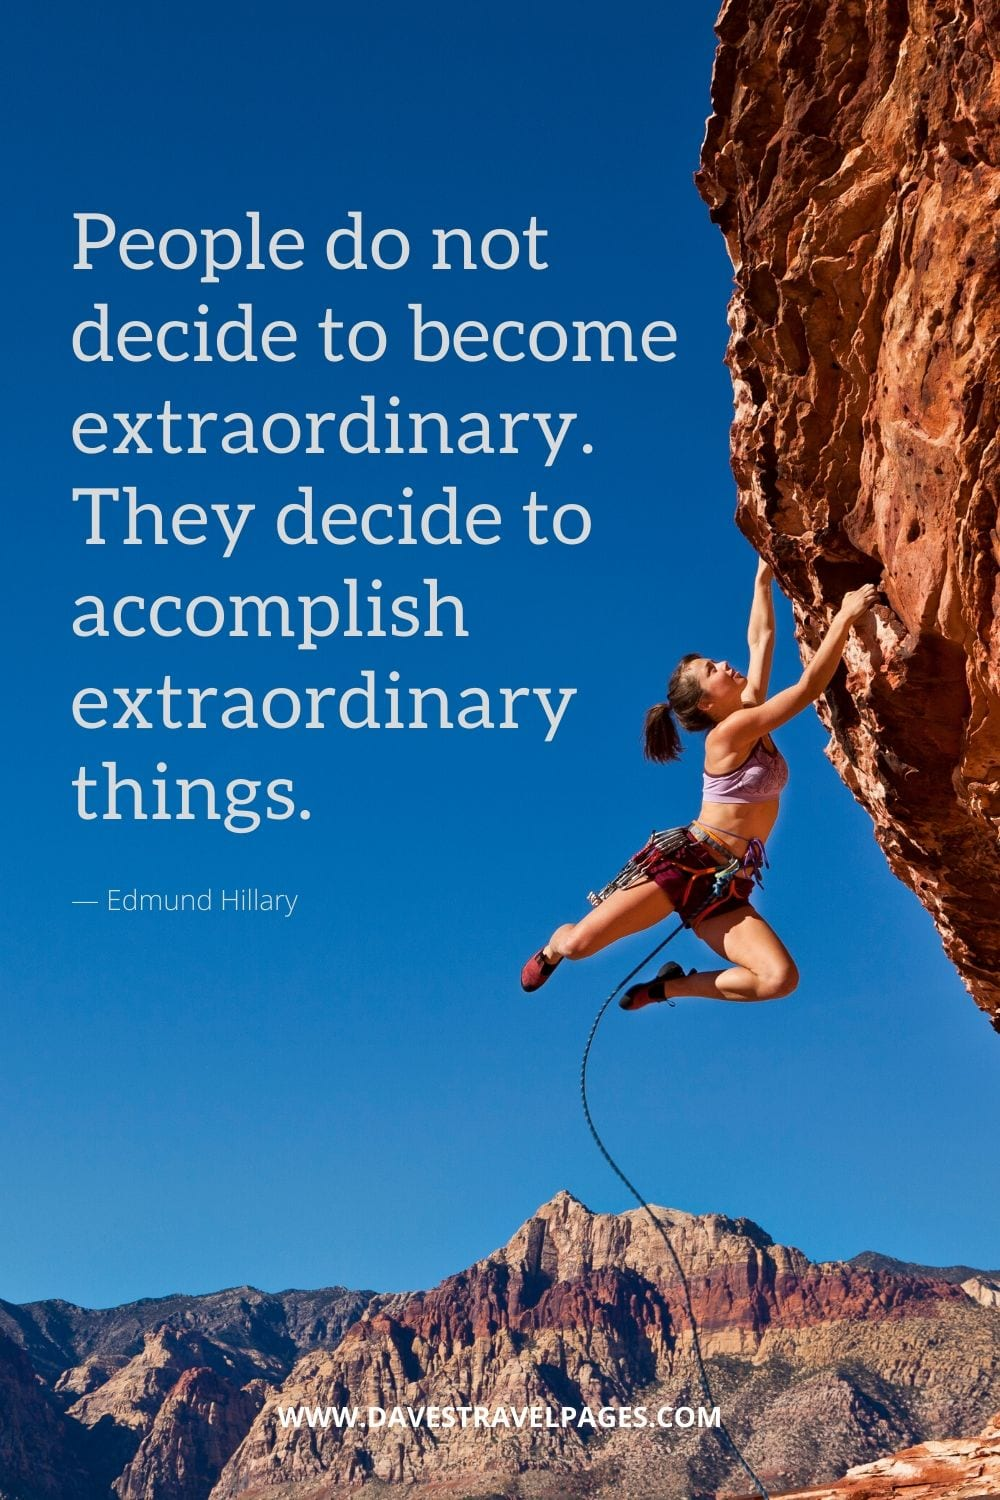 People do not decide to become extraordinary. They decide to accomplish extraordinary things. - Motivational Quote by Edmund Hillary